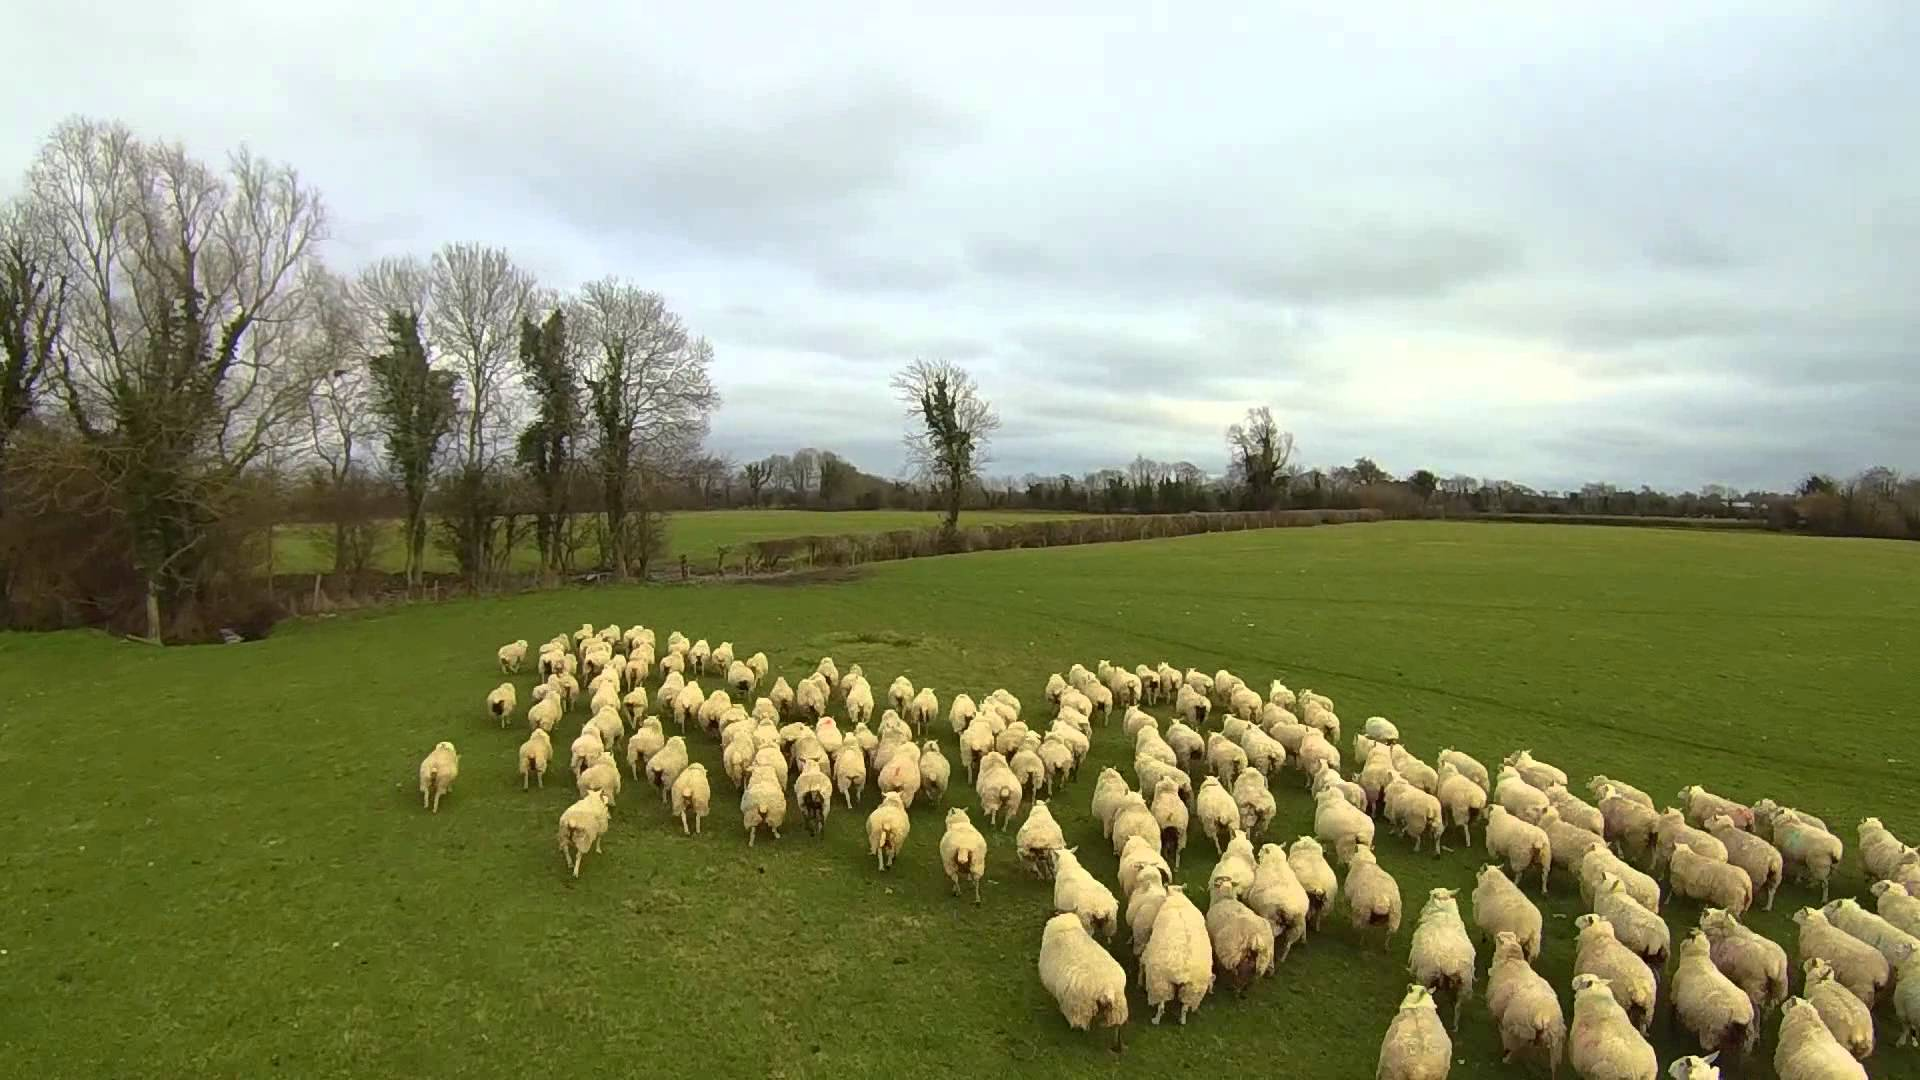 Over in Ireland, a drone named Shep is working like a (sheep)dog